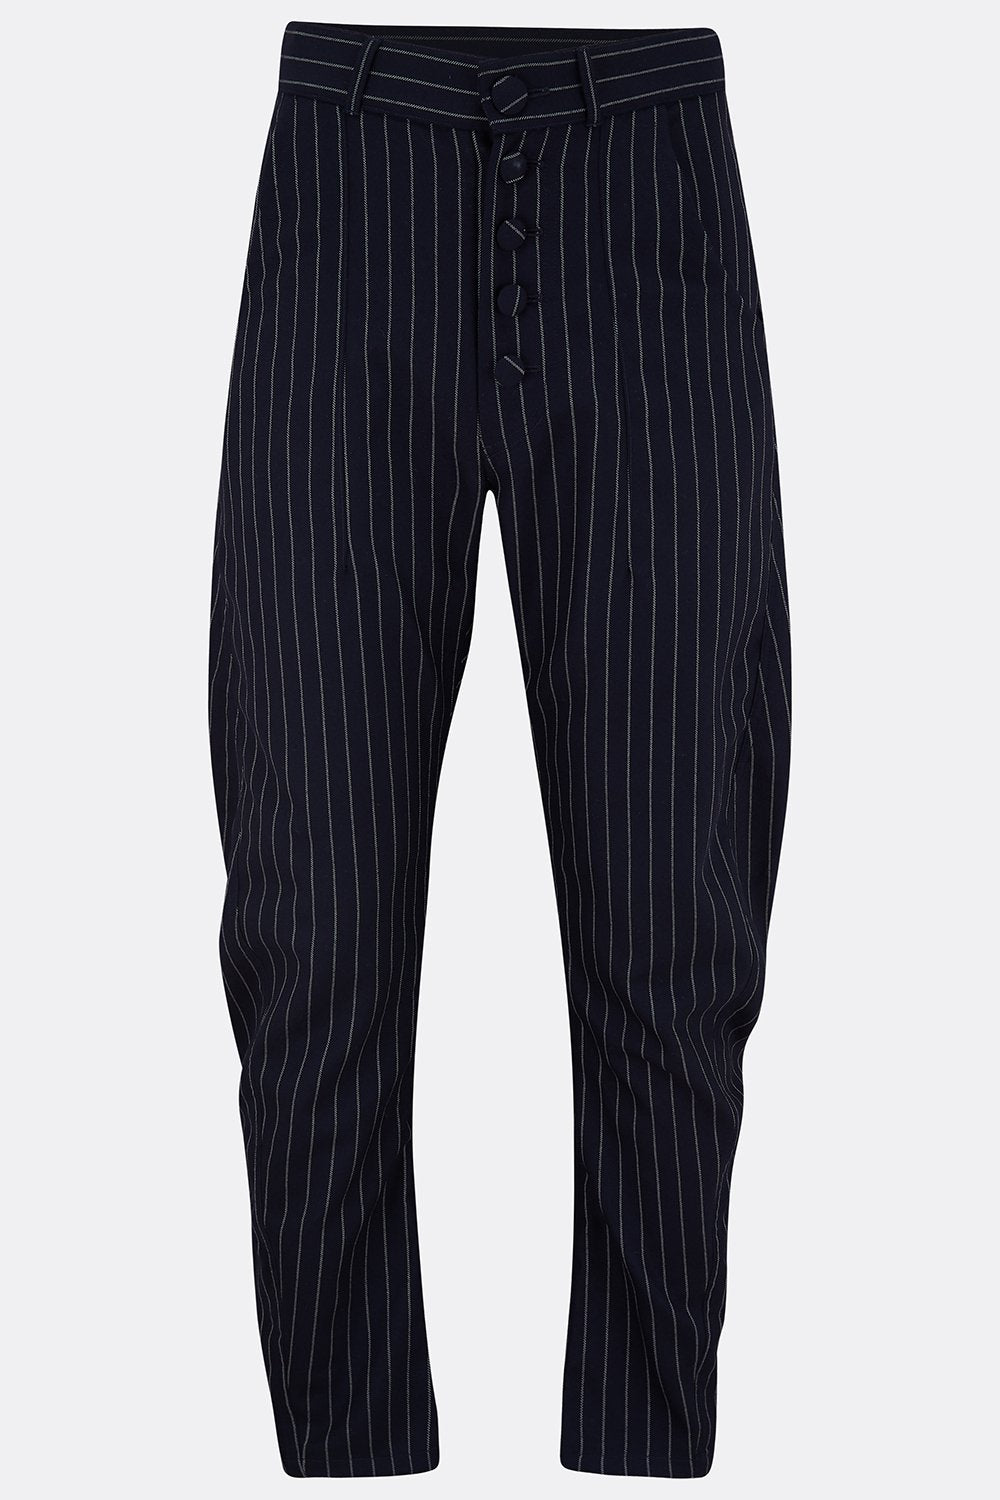 APACHE TROUSERS - NAVY ROPE STRIPE-menswear-A Child Of The Jago